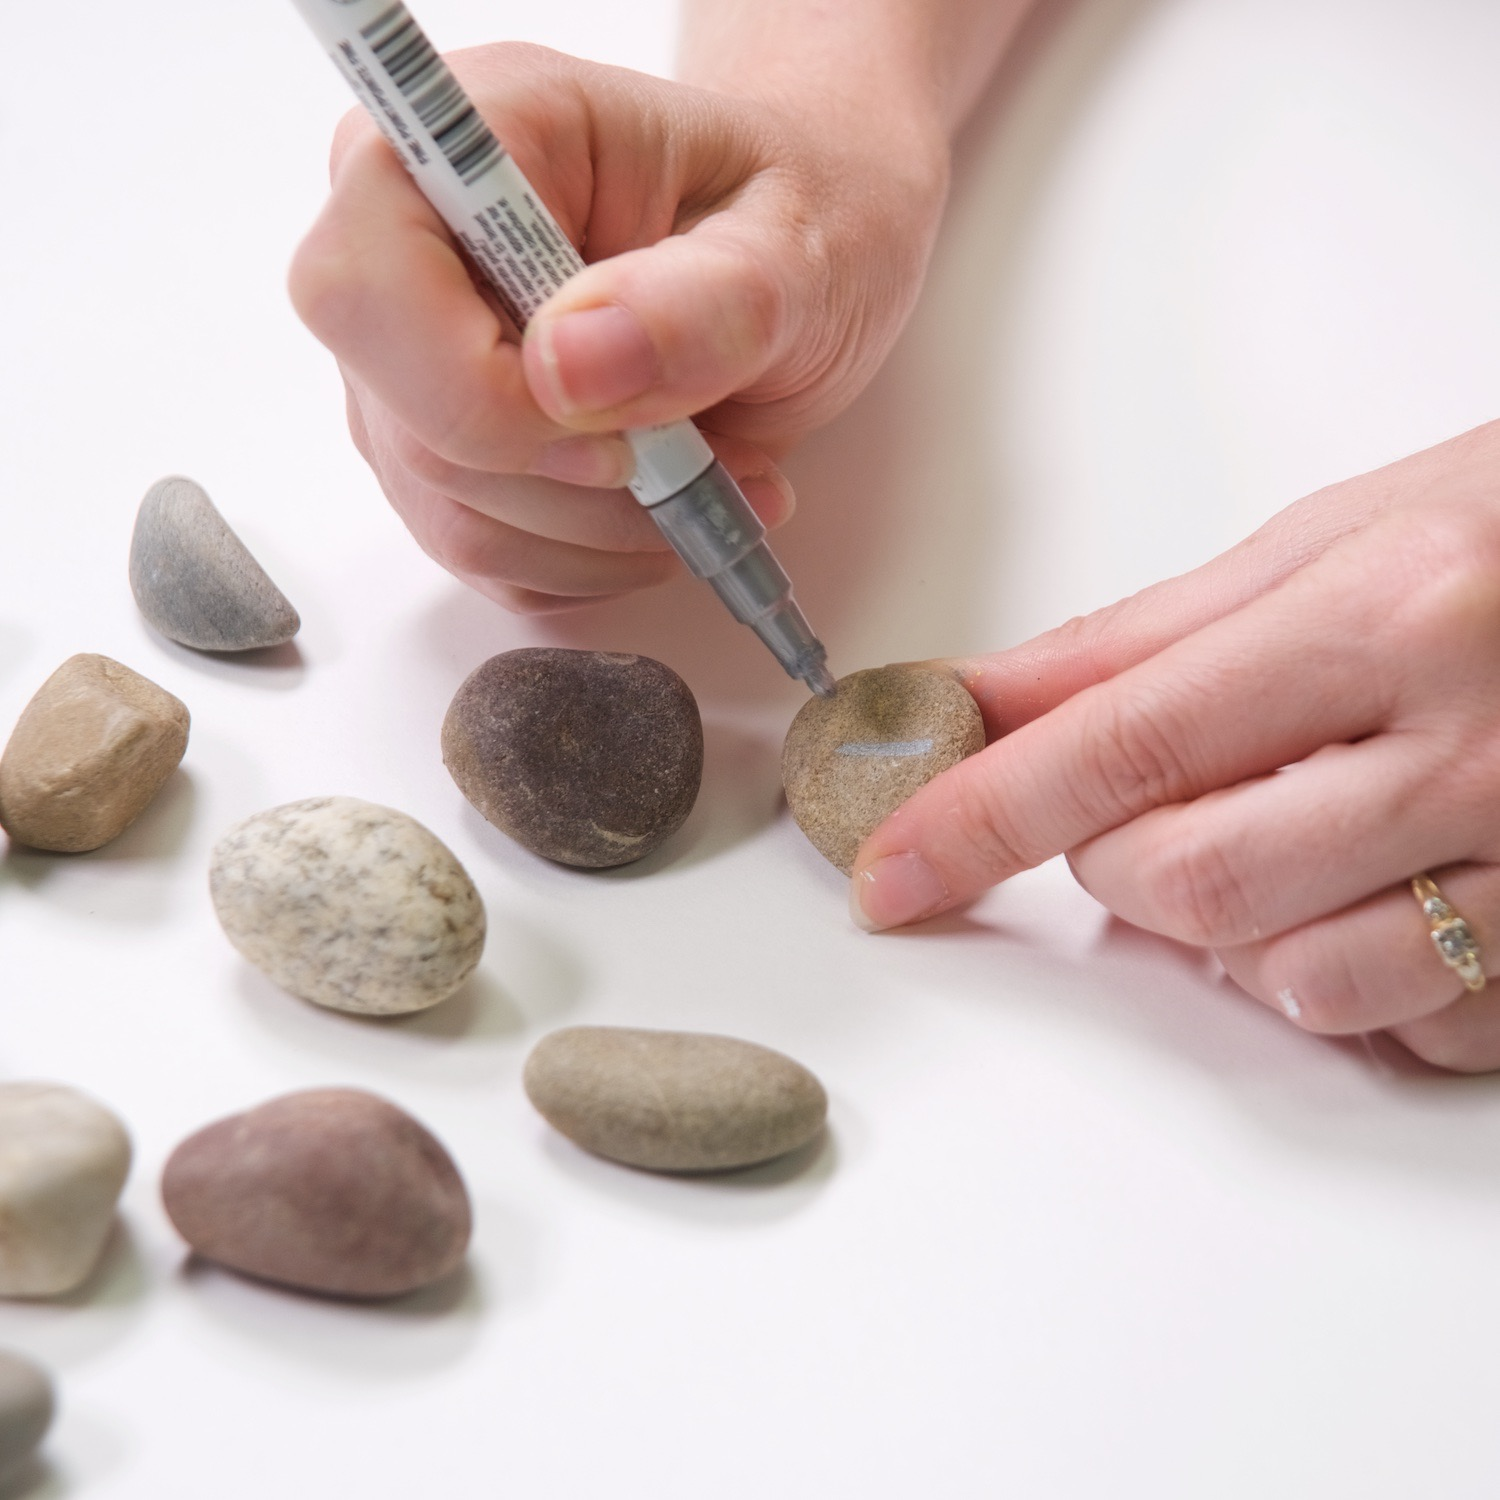 draw a line on the rock to start making dominoes